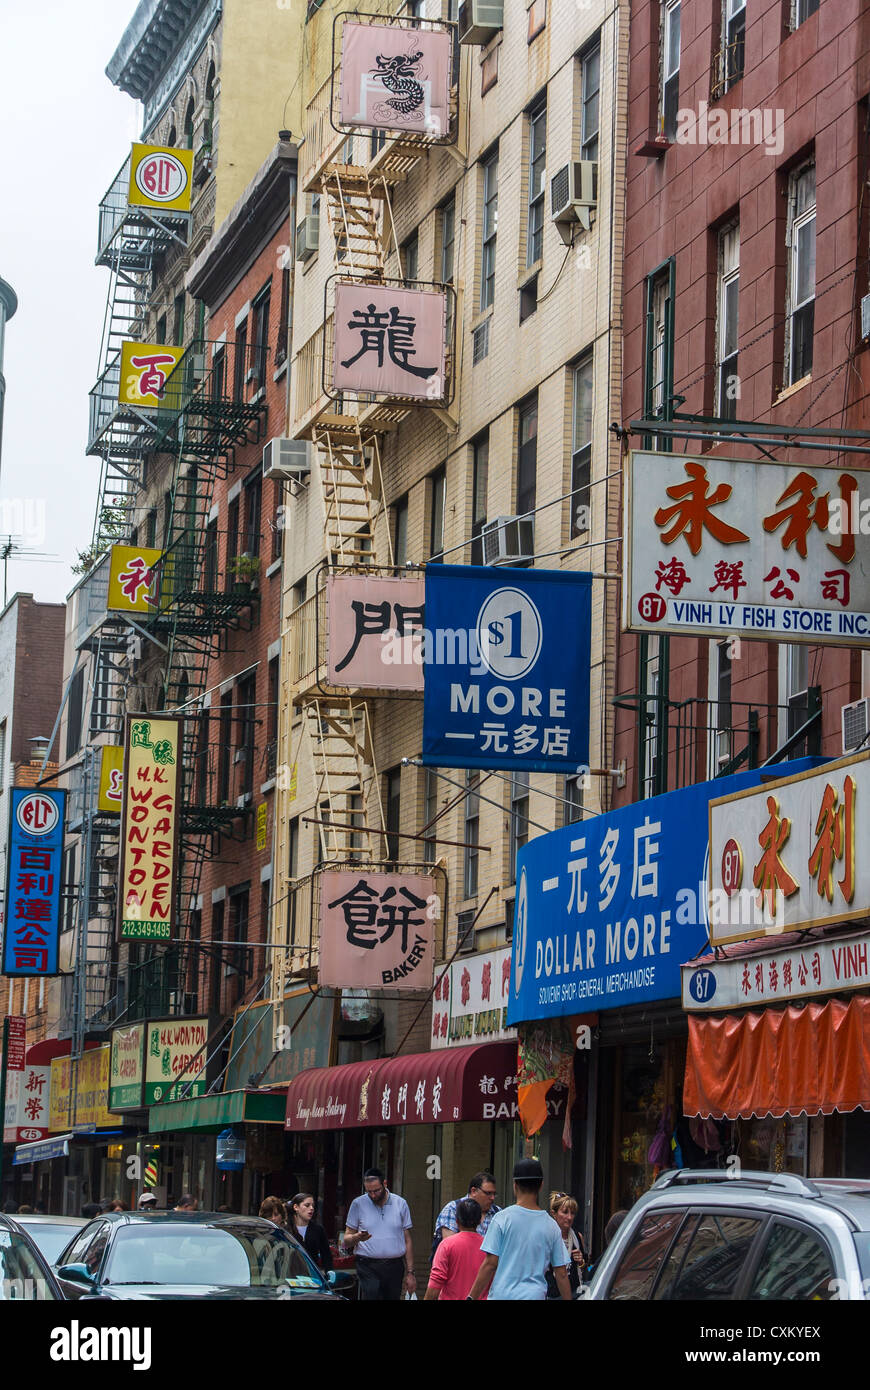 america asian business commerce nyc ny stores shops architecture